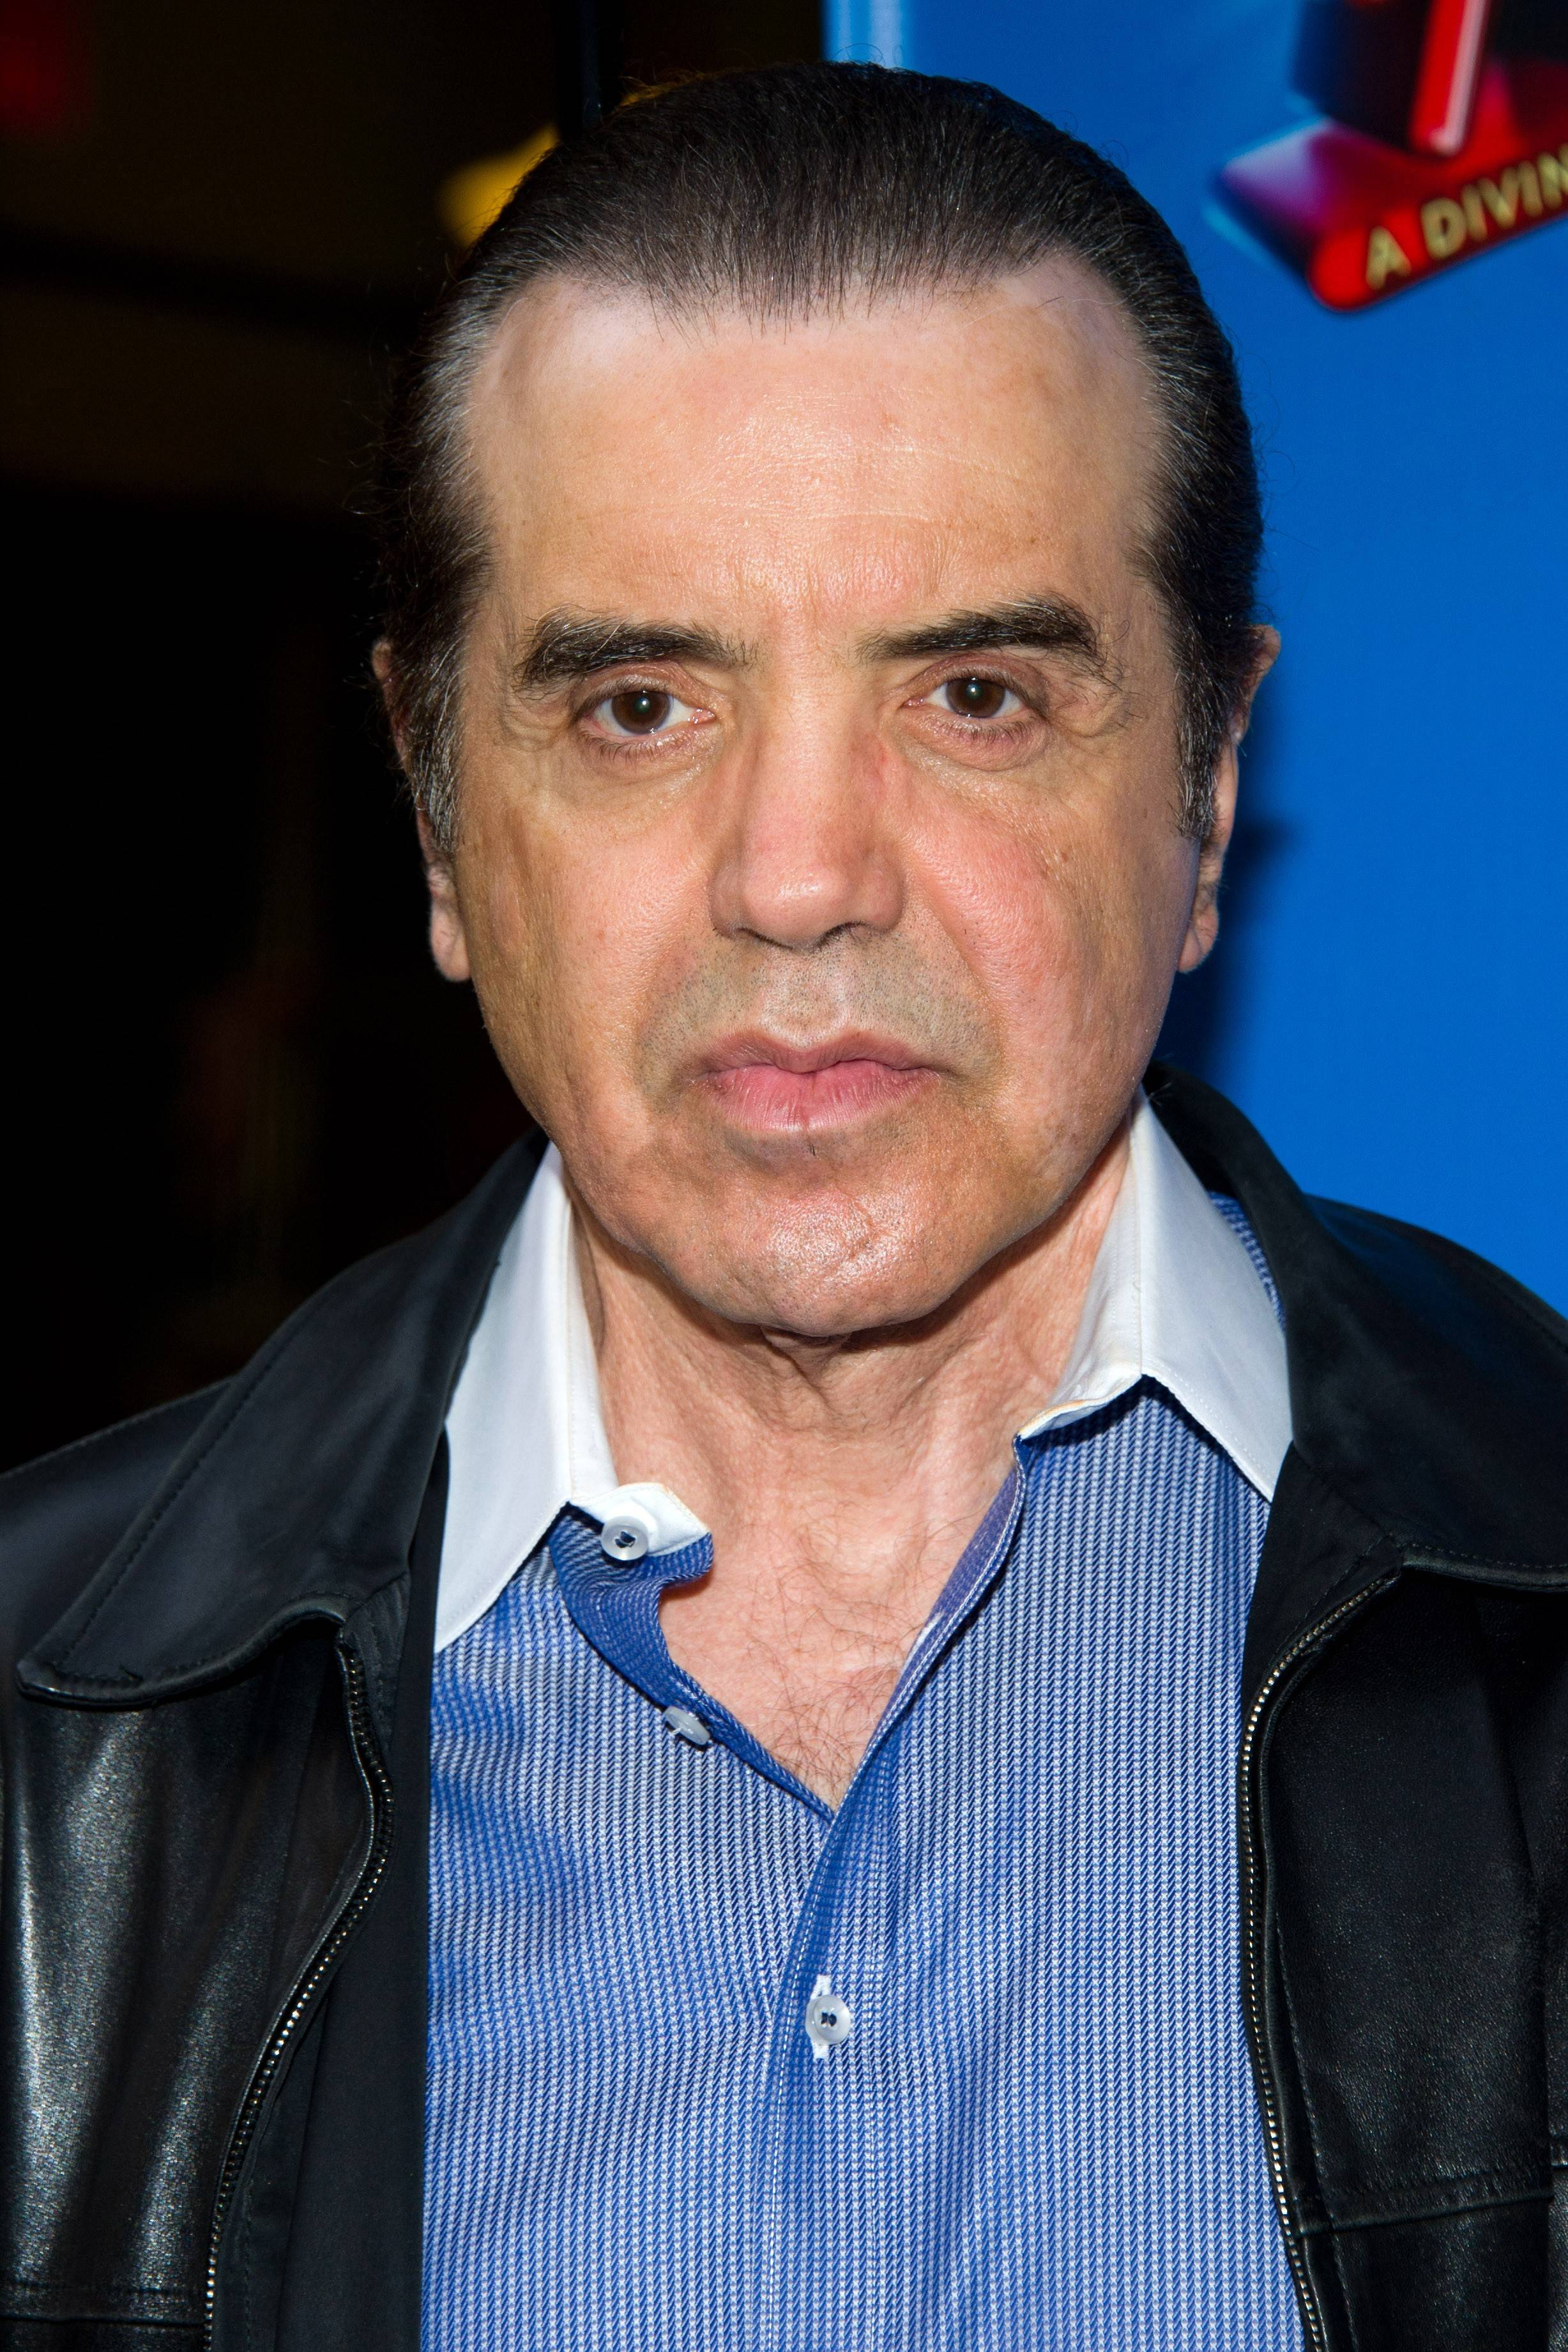 Oscar-nominated actor Chazz Palminteri grew up in the Bronx.